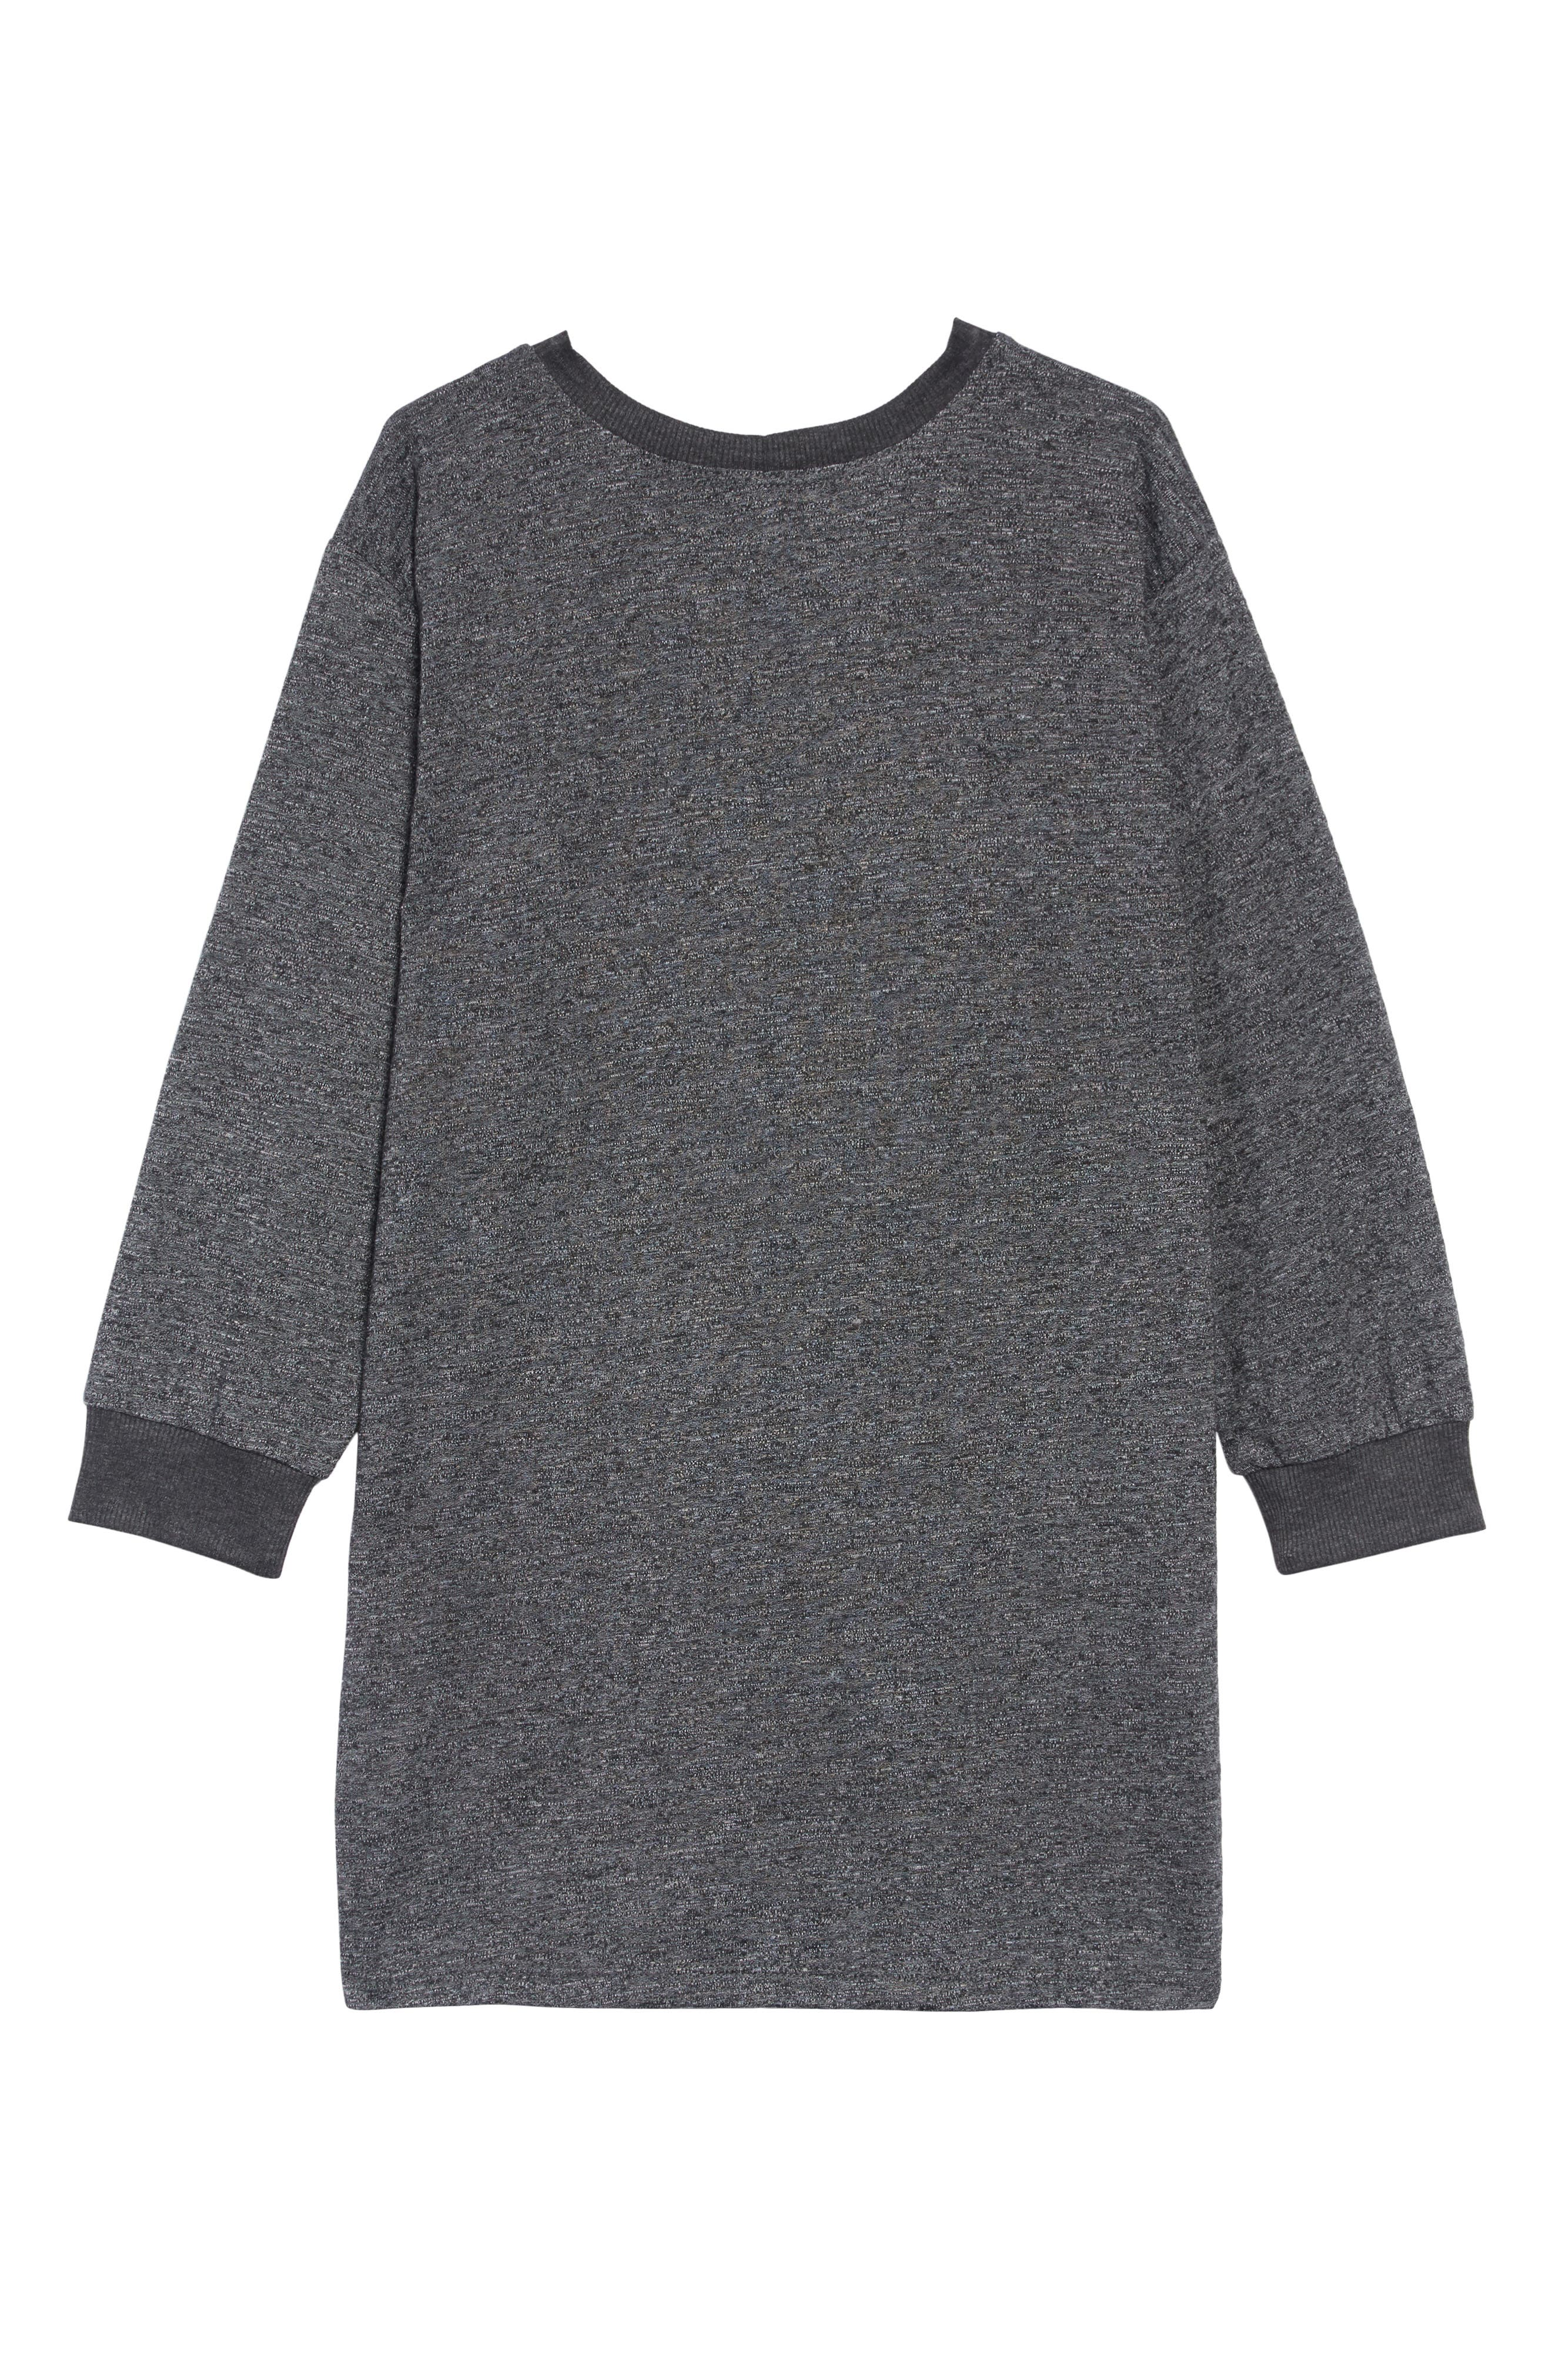 Cat with the Mask T-Shirt Dress,                             Alternate thumbnail 2, color,                             020